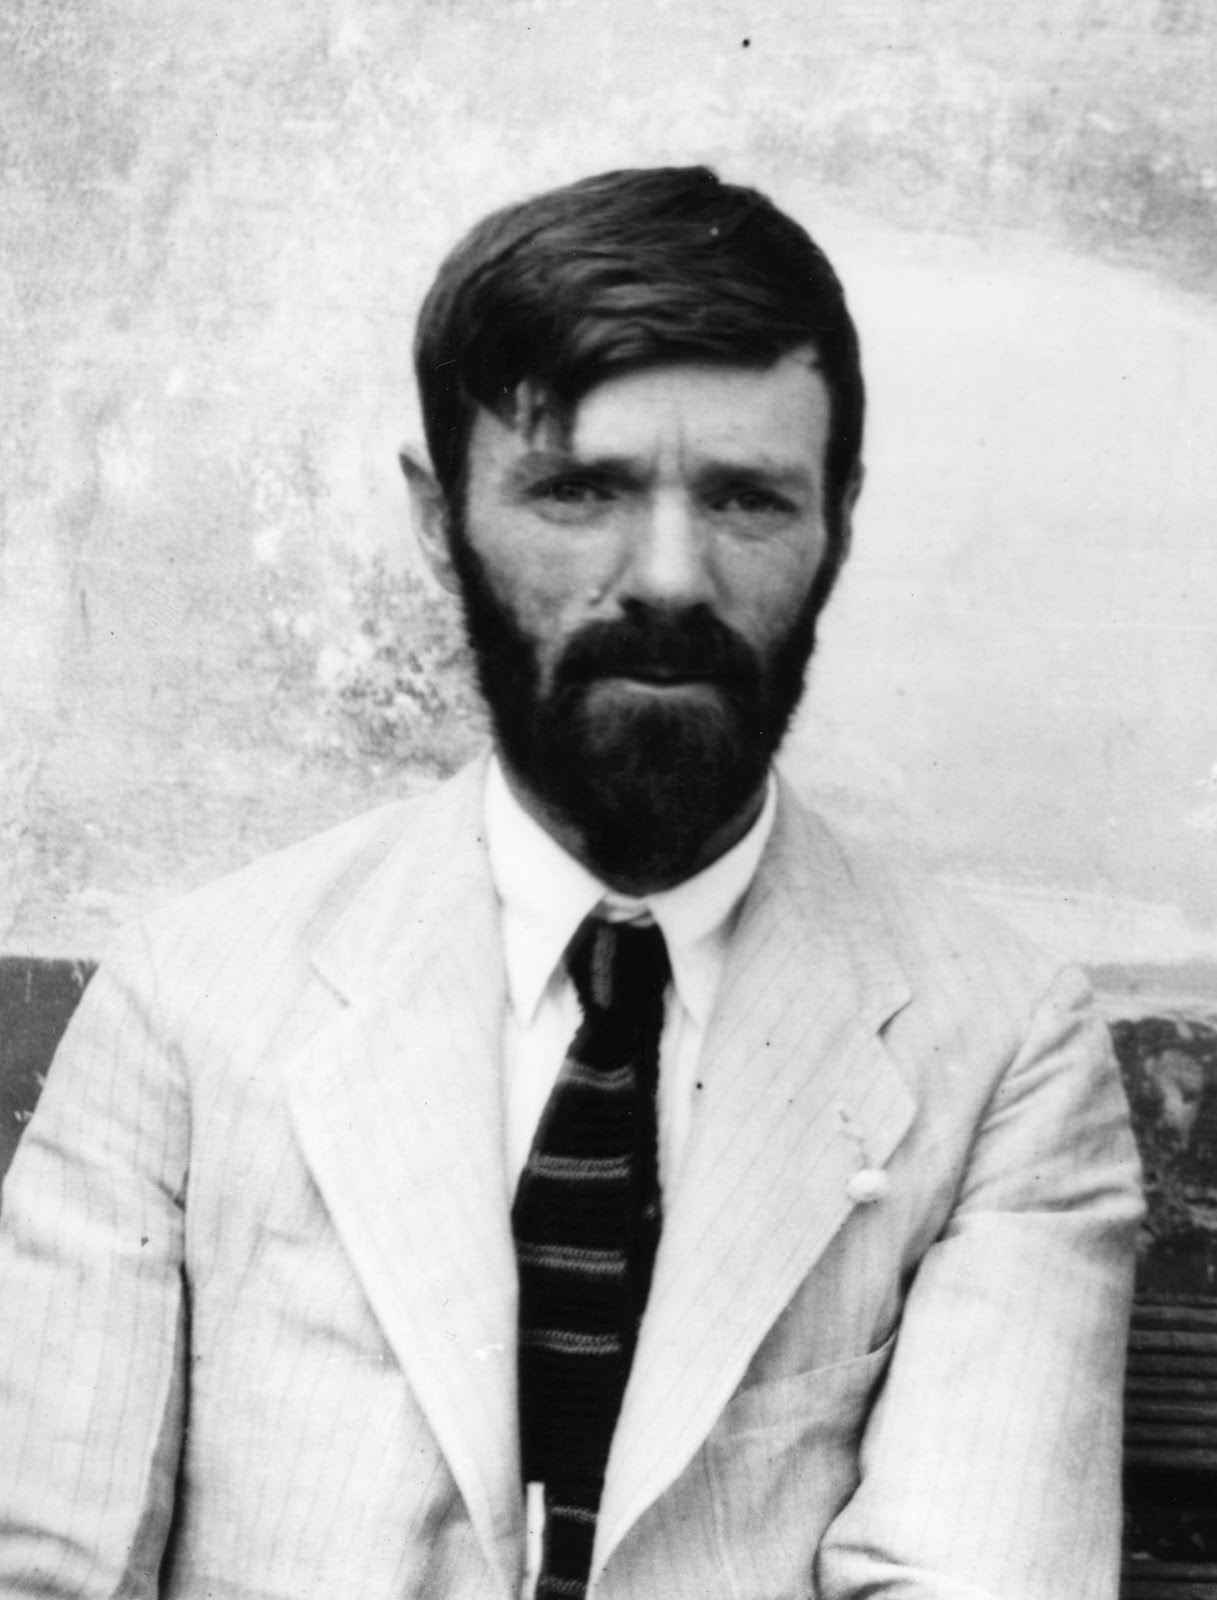 D. H. Lawrence photo #5426, D. H. Lawrence image